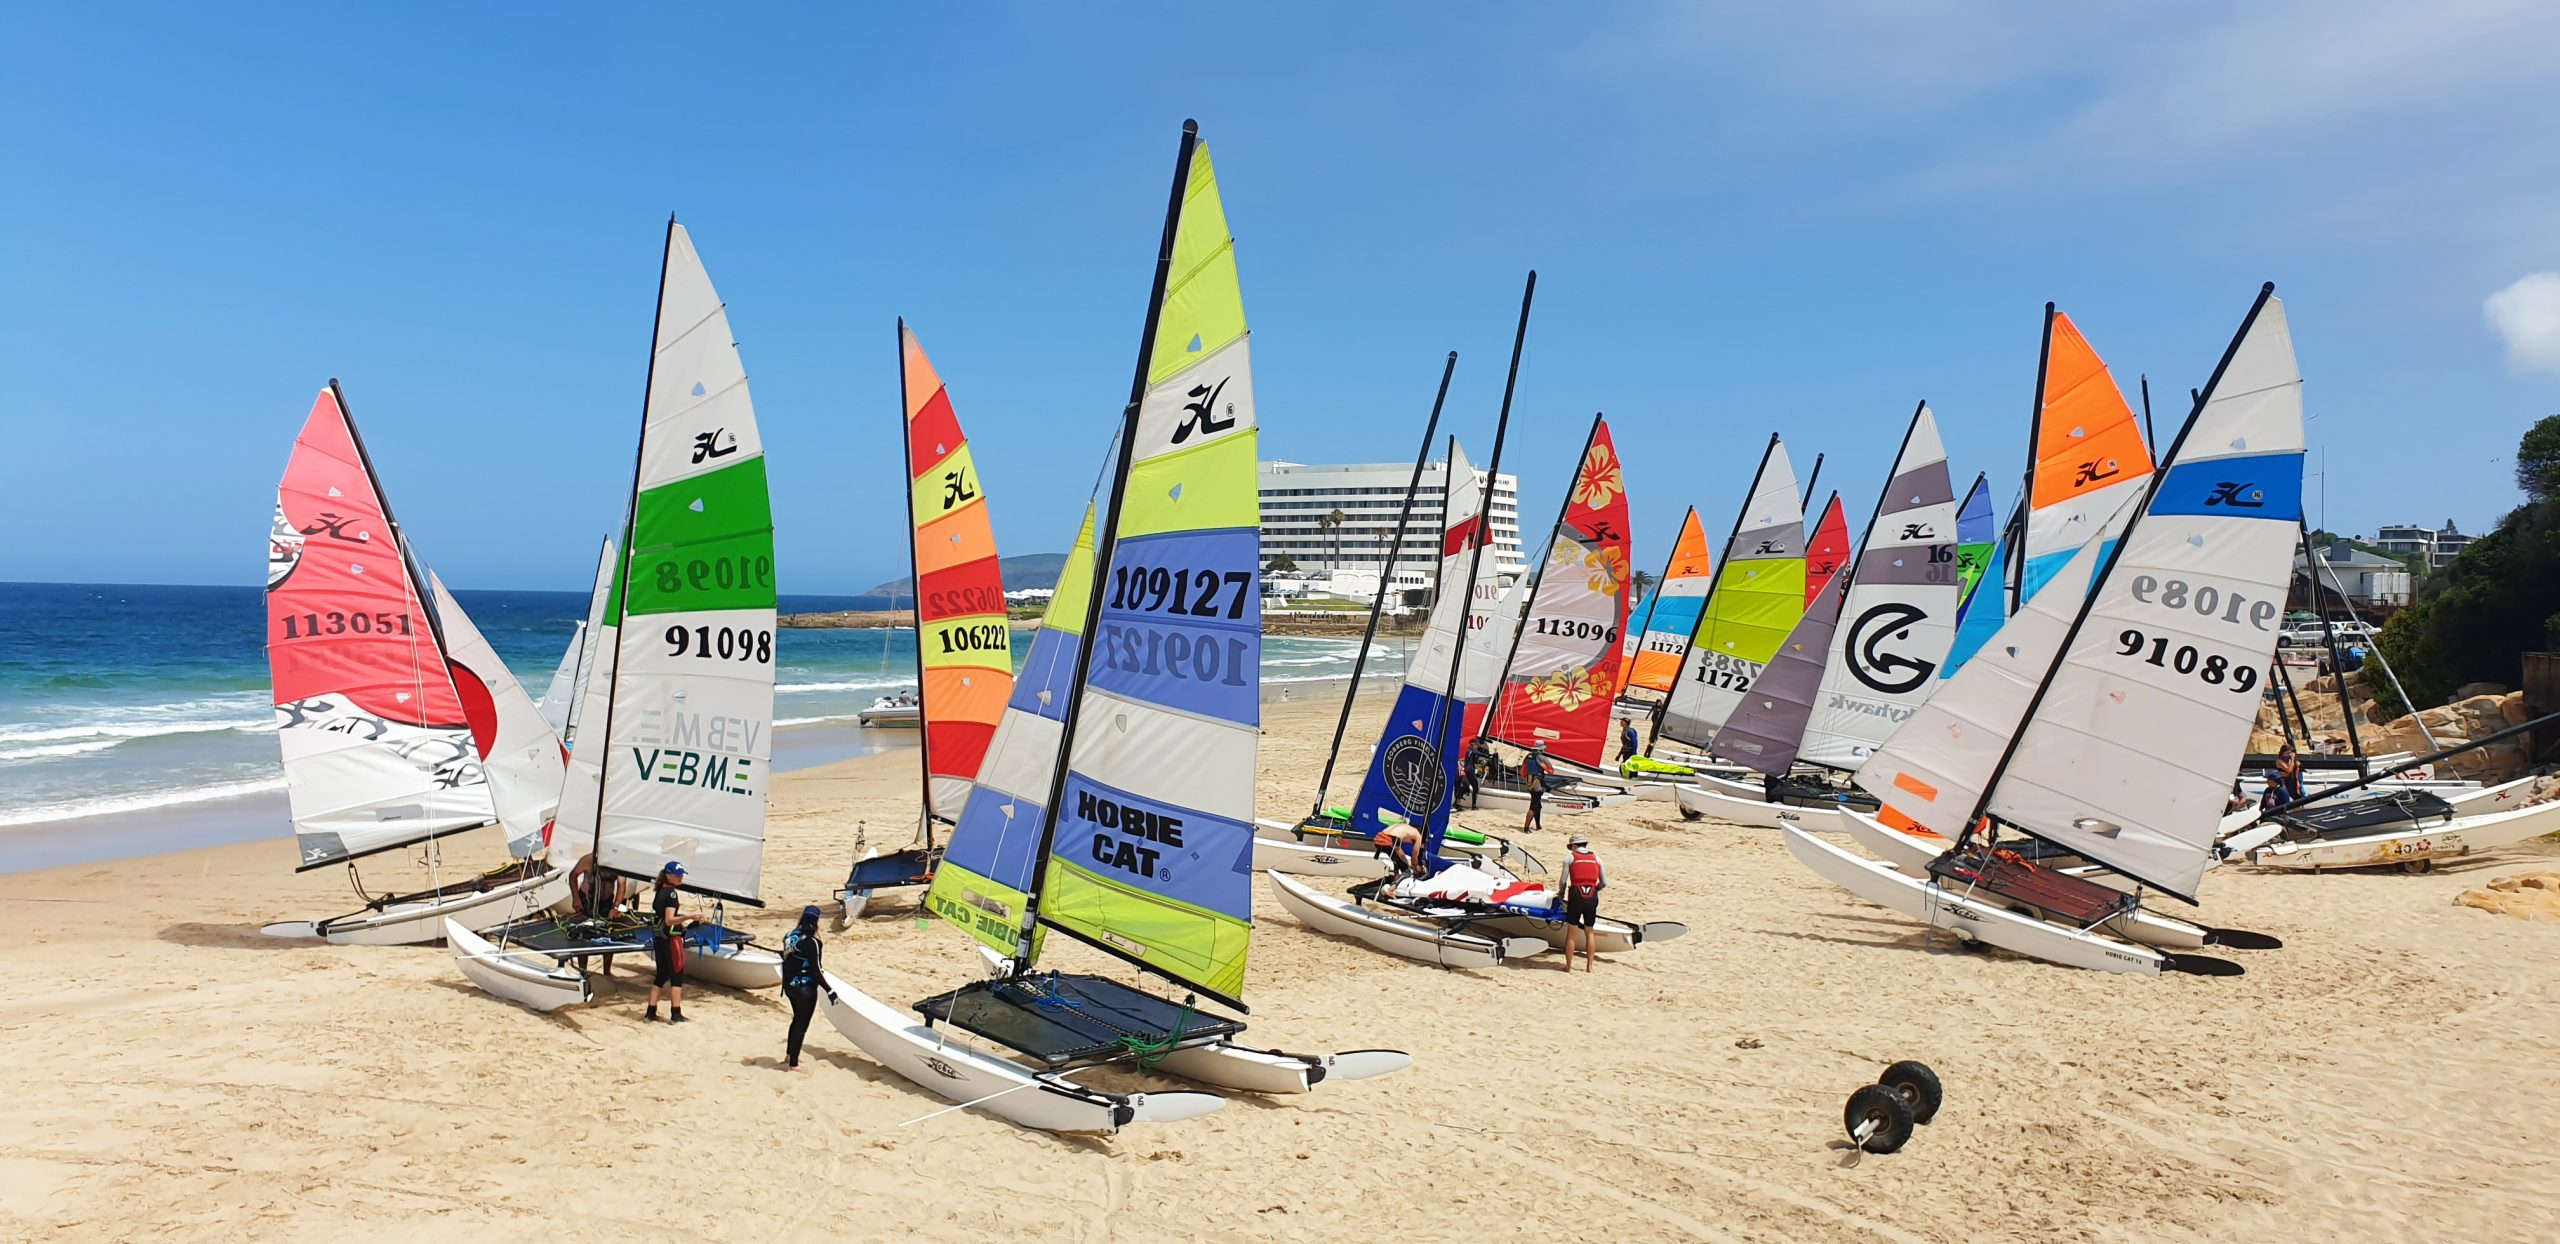 Hobie 16s on Plett's Hobie Beach during the SA Hobie 16 Nationals Regatta 2020